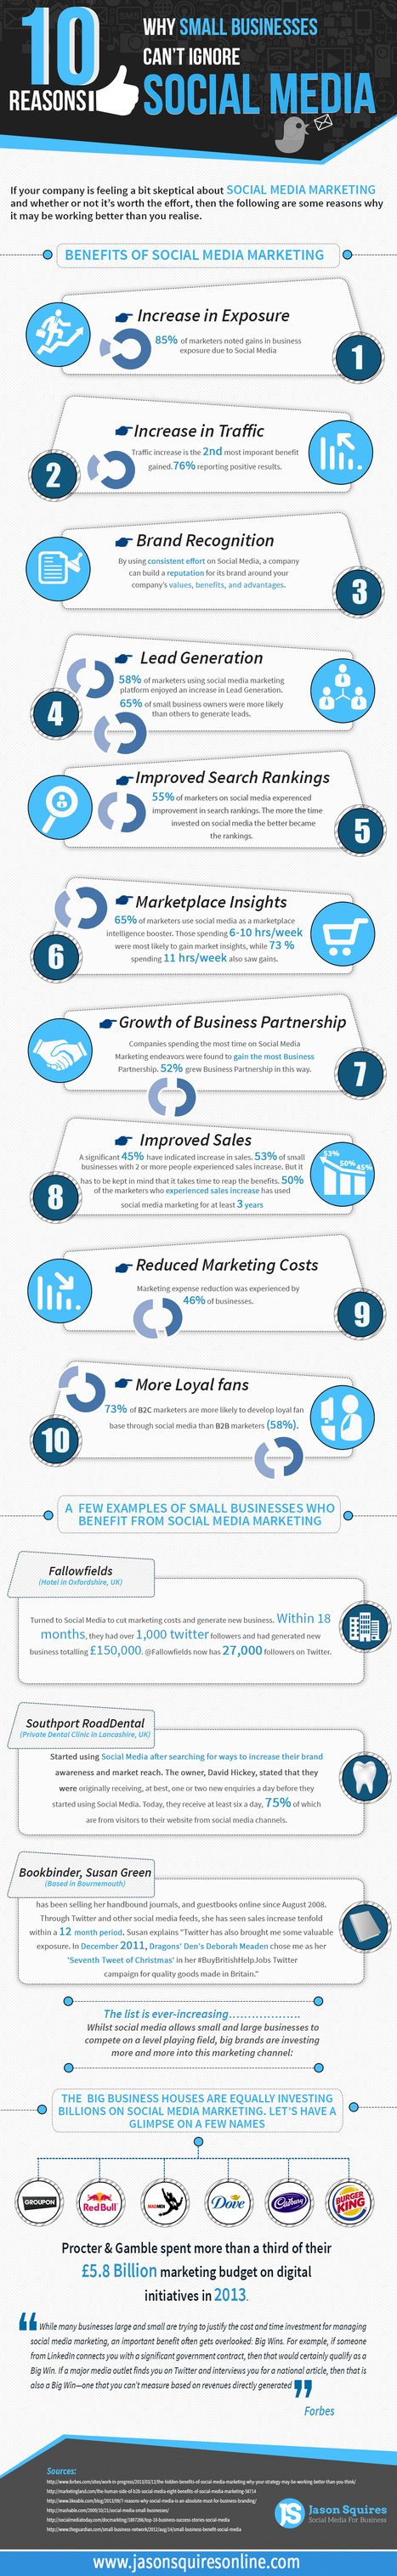 INFOGRAPHIC - 10 Reasons Why Small Businesses Can't Ignore Social Media | Marketing Insights | Scoop.it